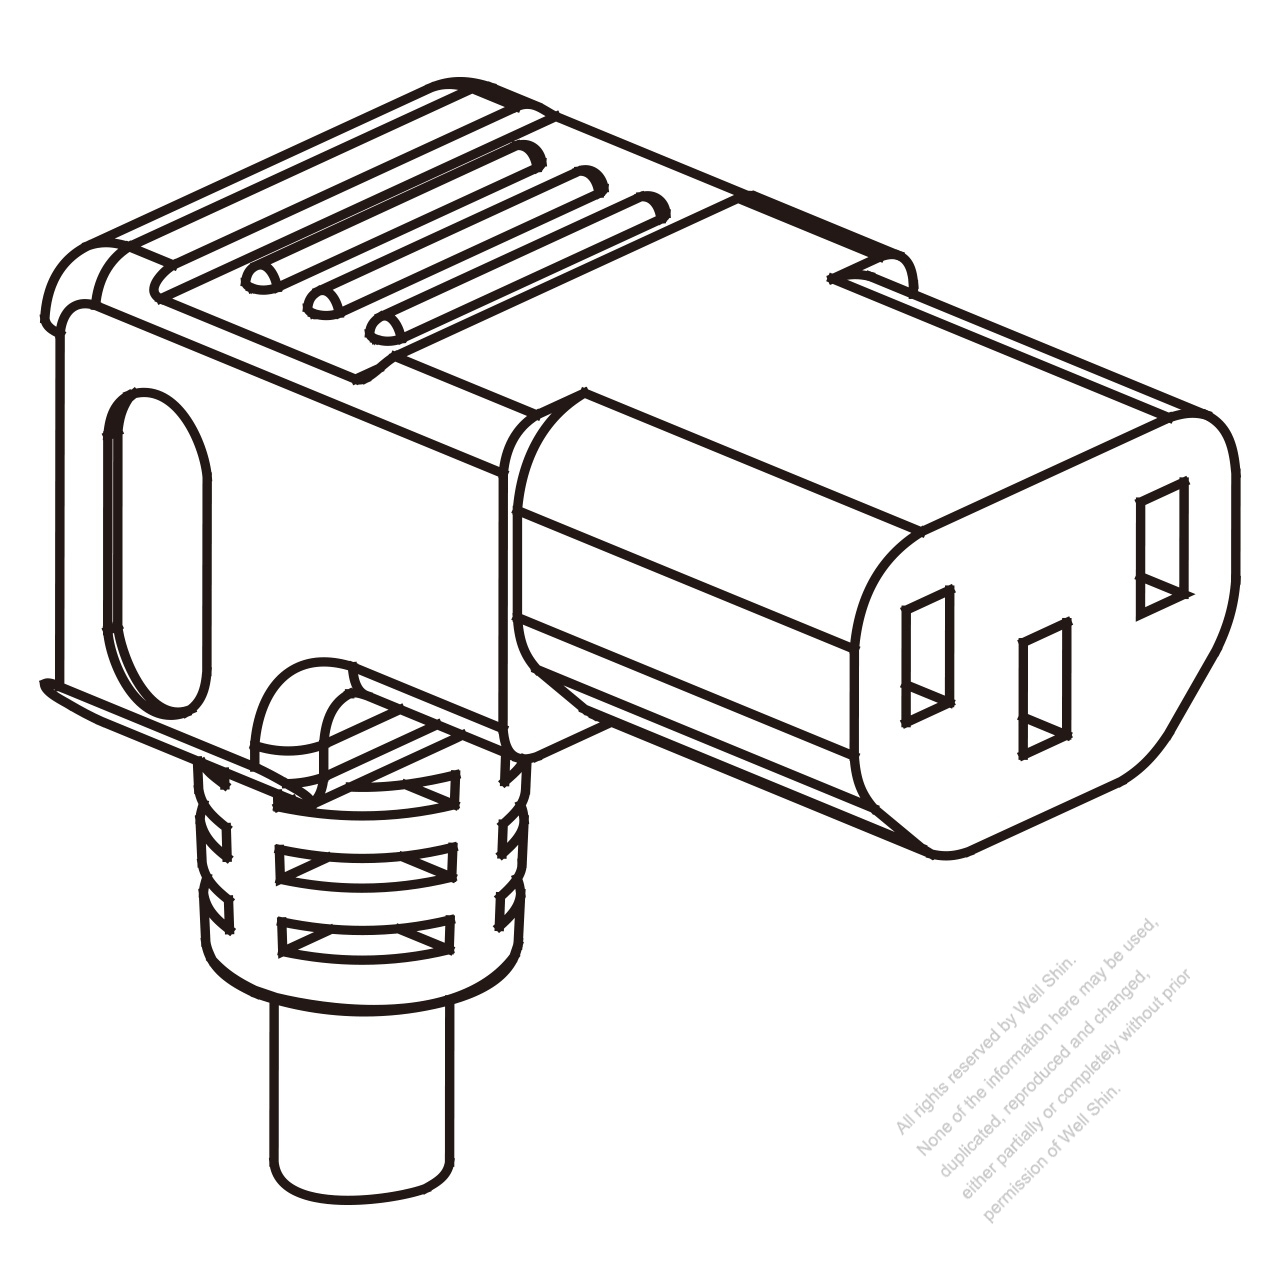 Russia Iec 320 C13 Connectors 3 Pin Angle 10a 250v